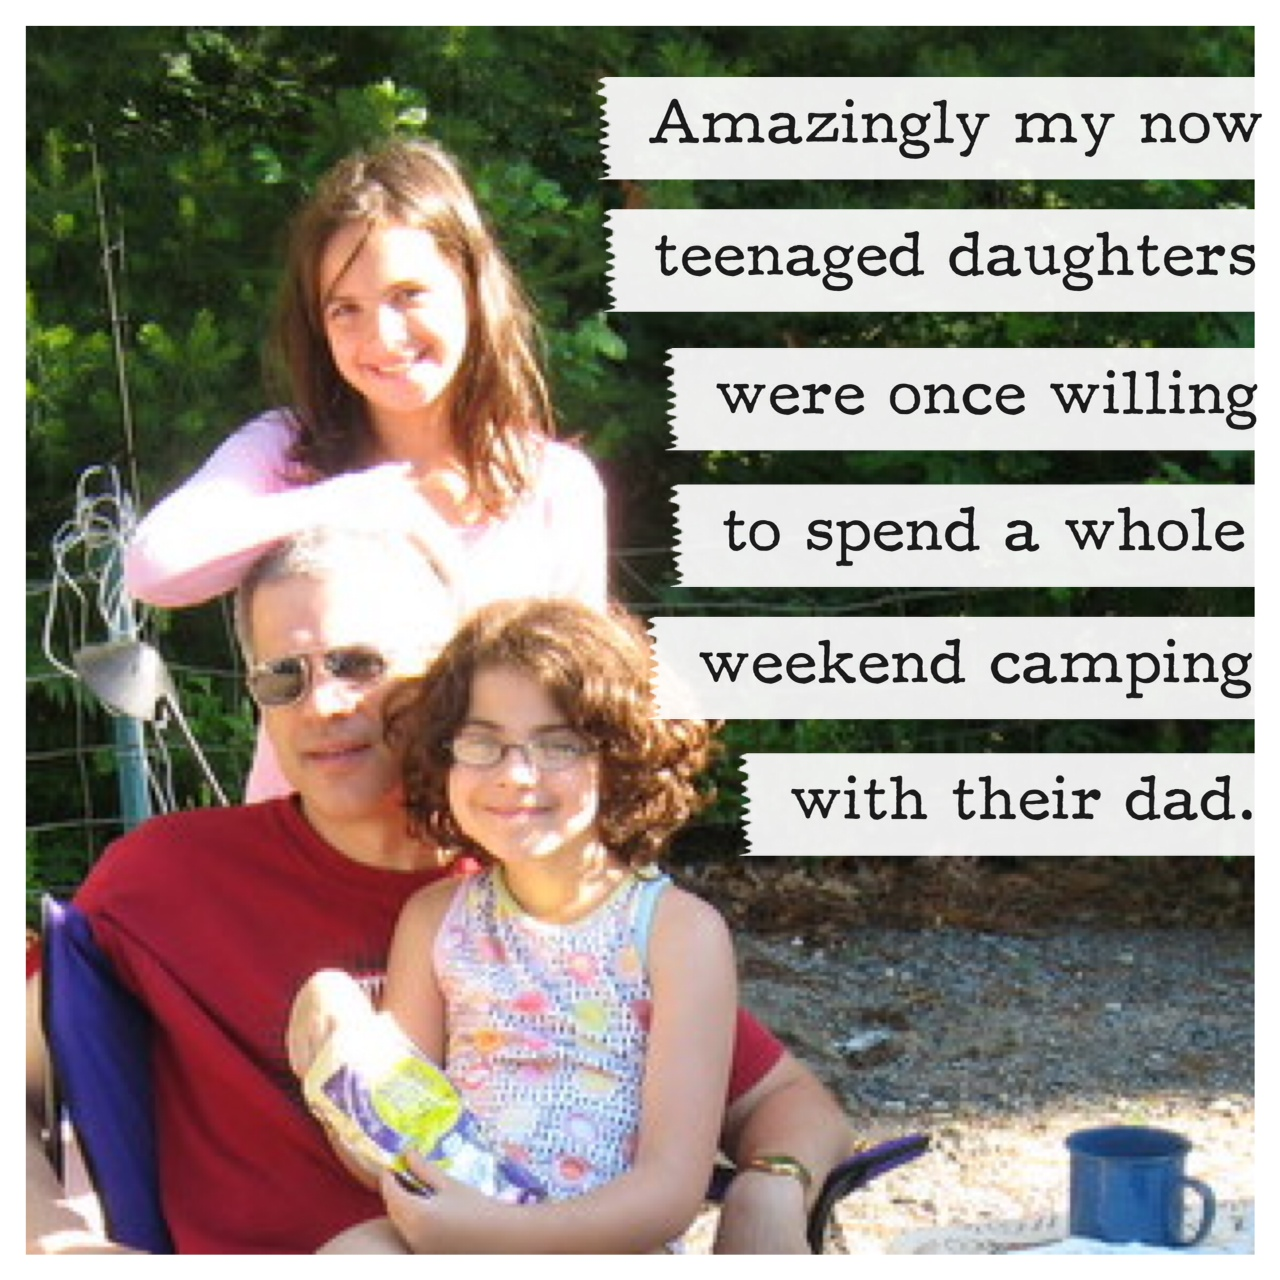 Father and two daughers at a campground